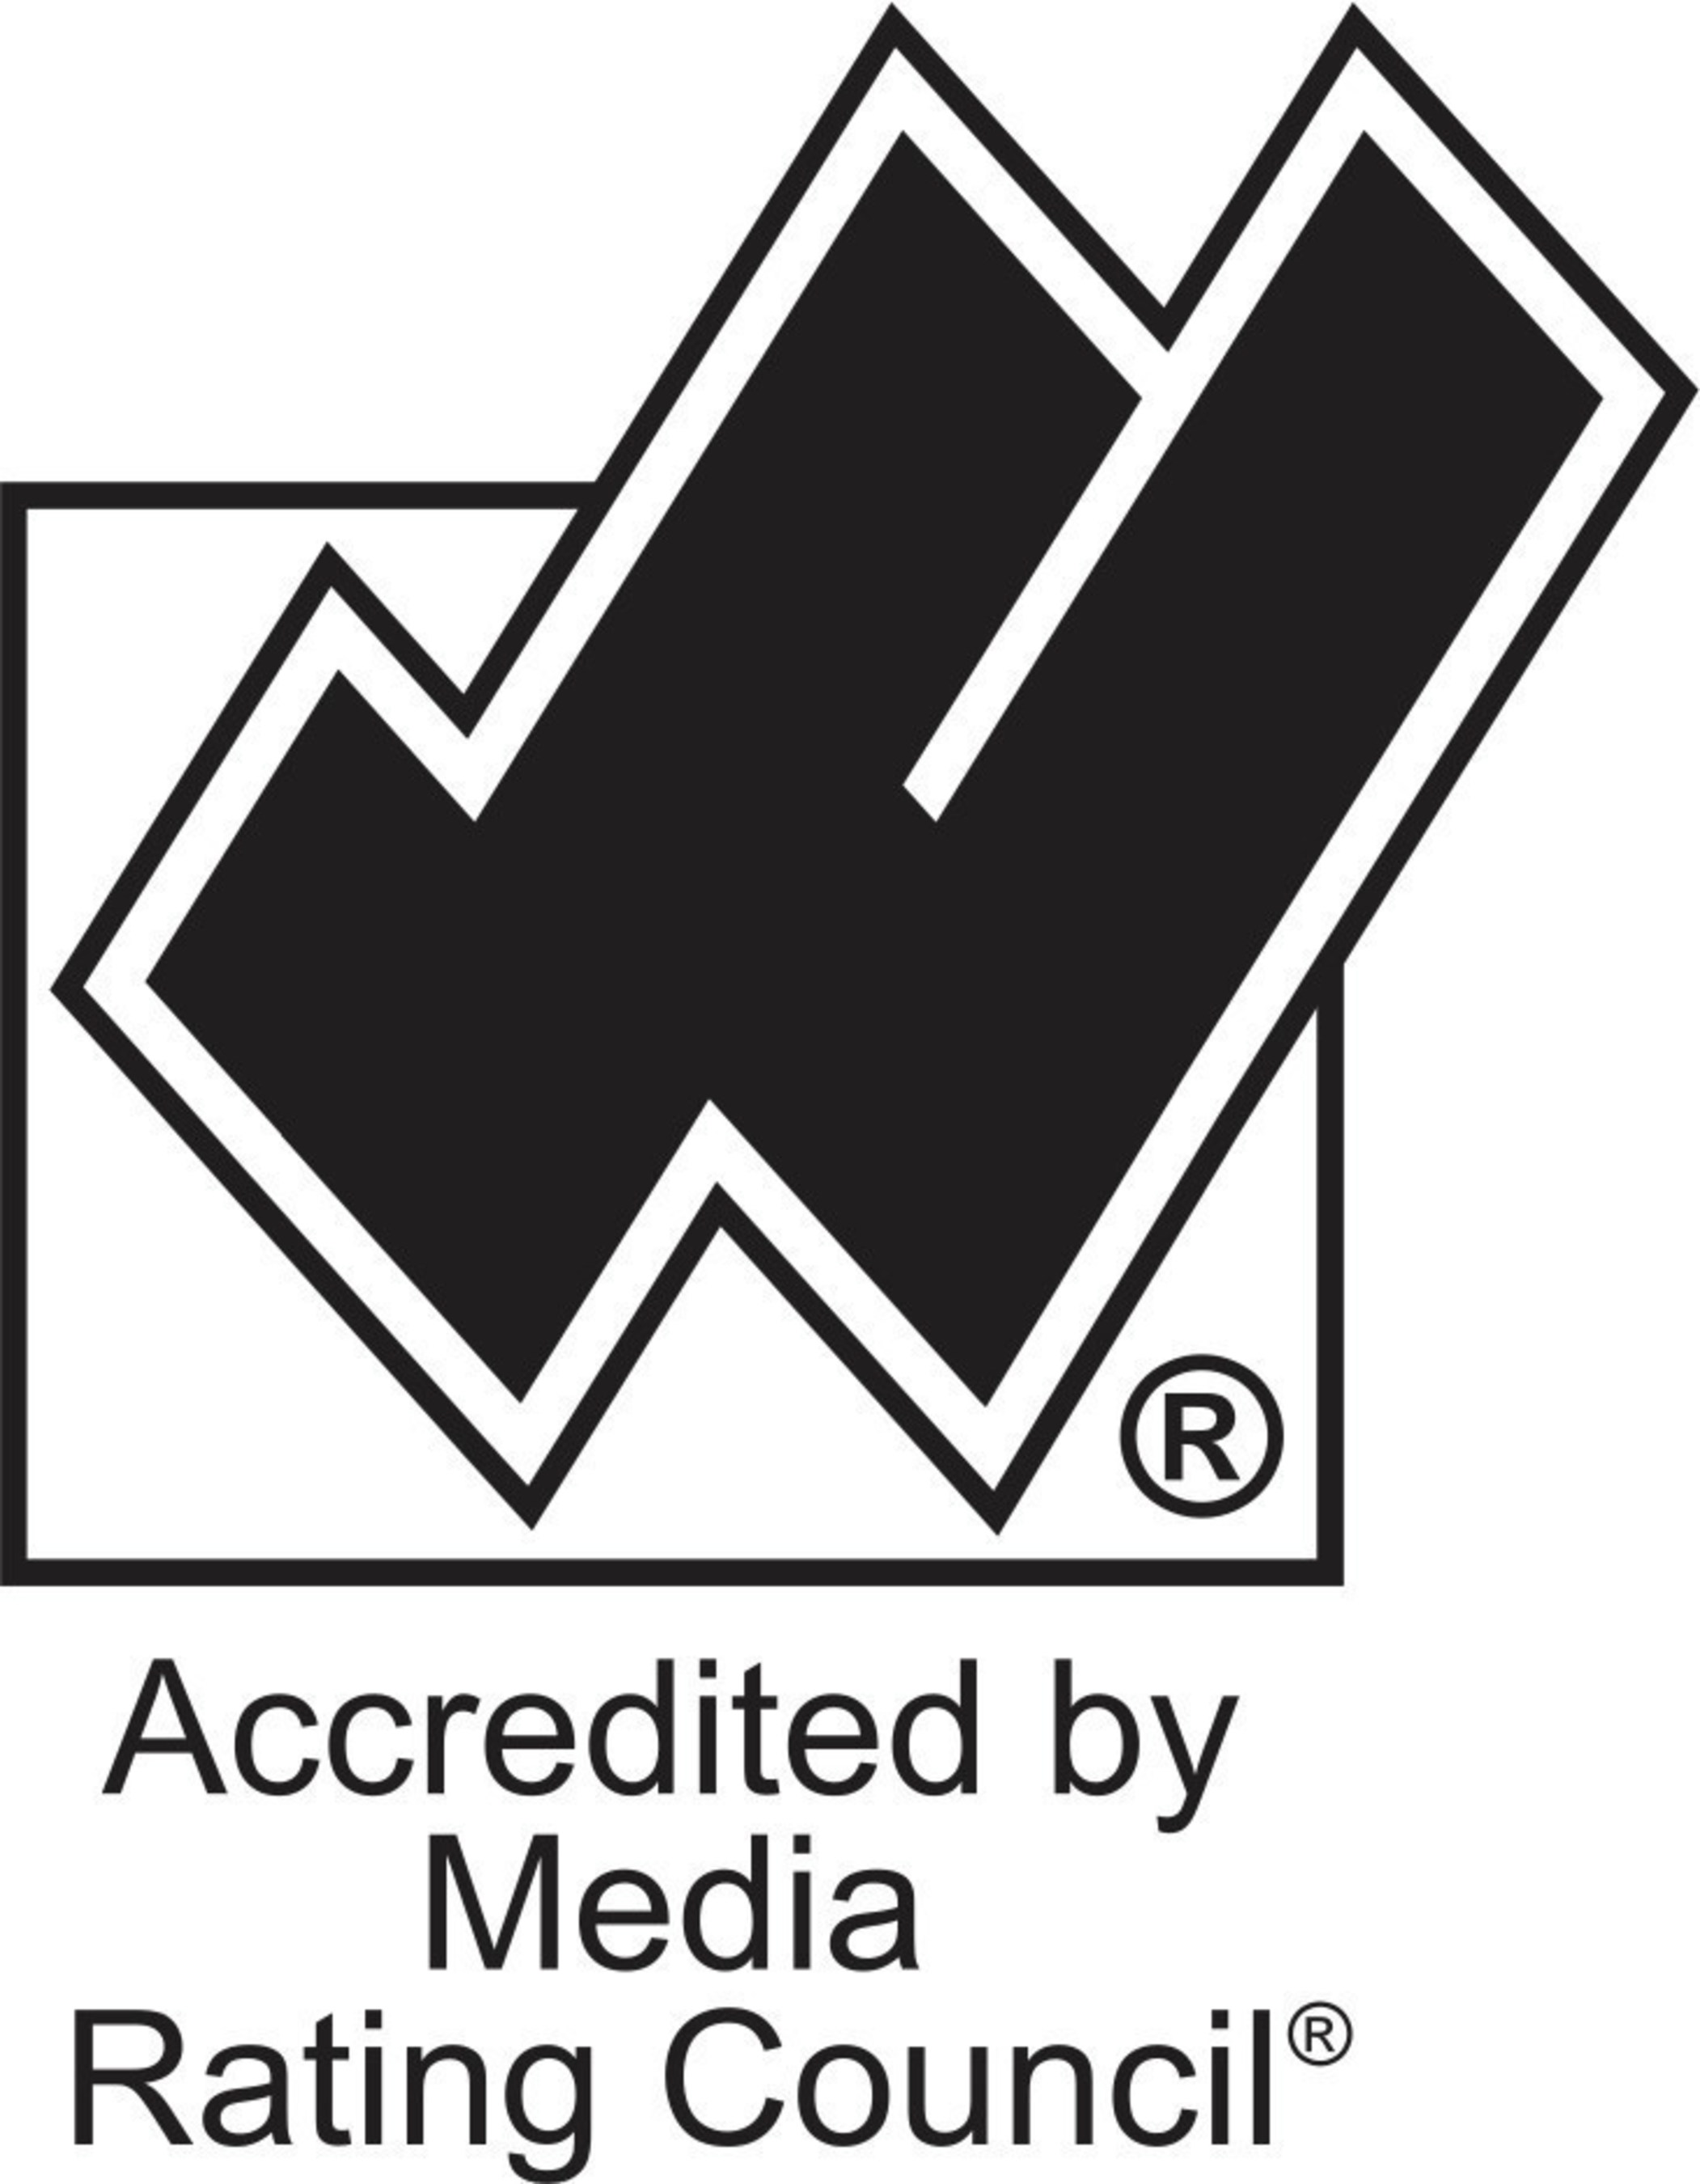 Moat Becomes First Company Accredited By The MRC For Mobile Viewable Impression Measurement